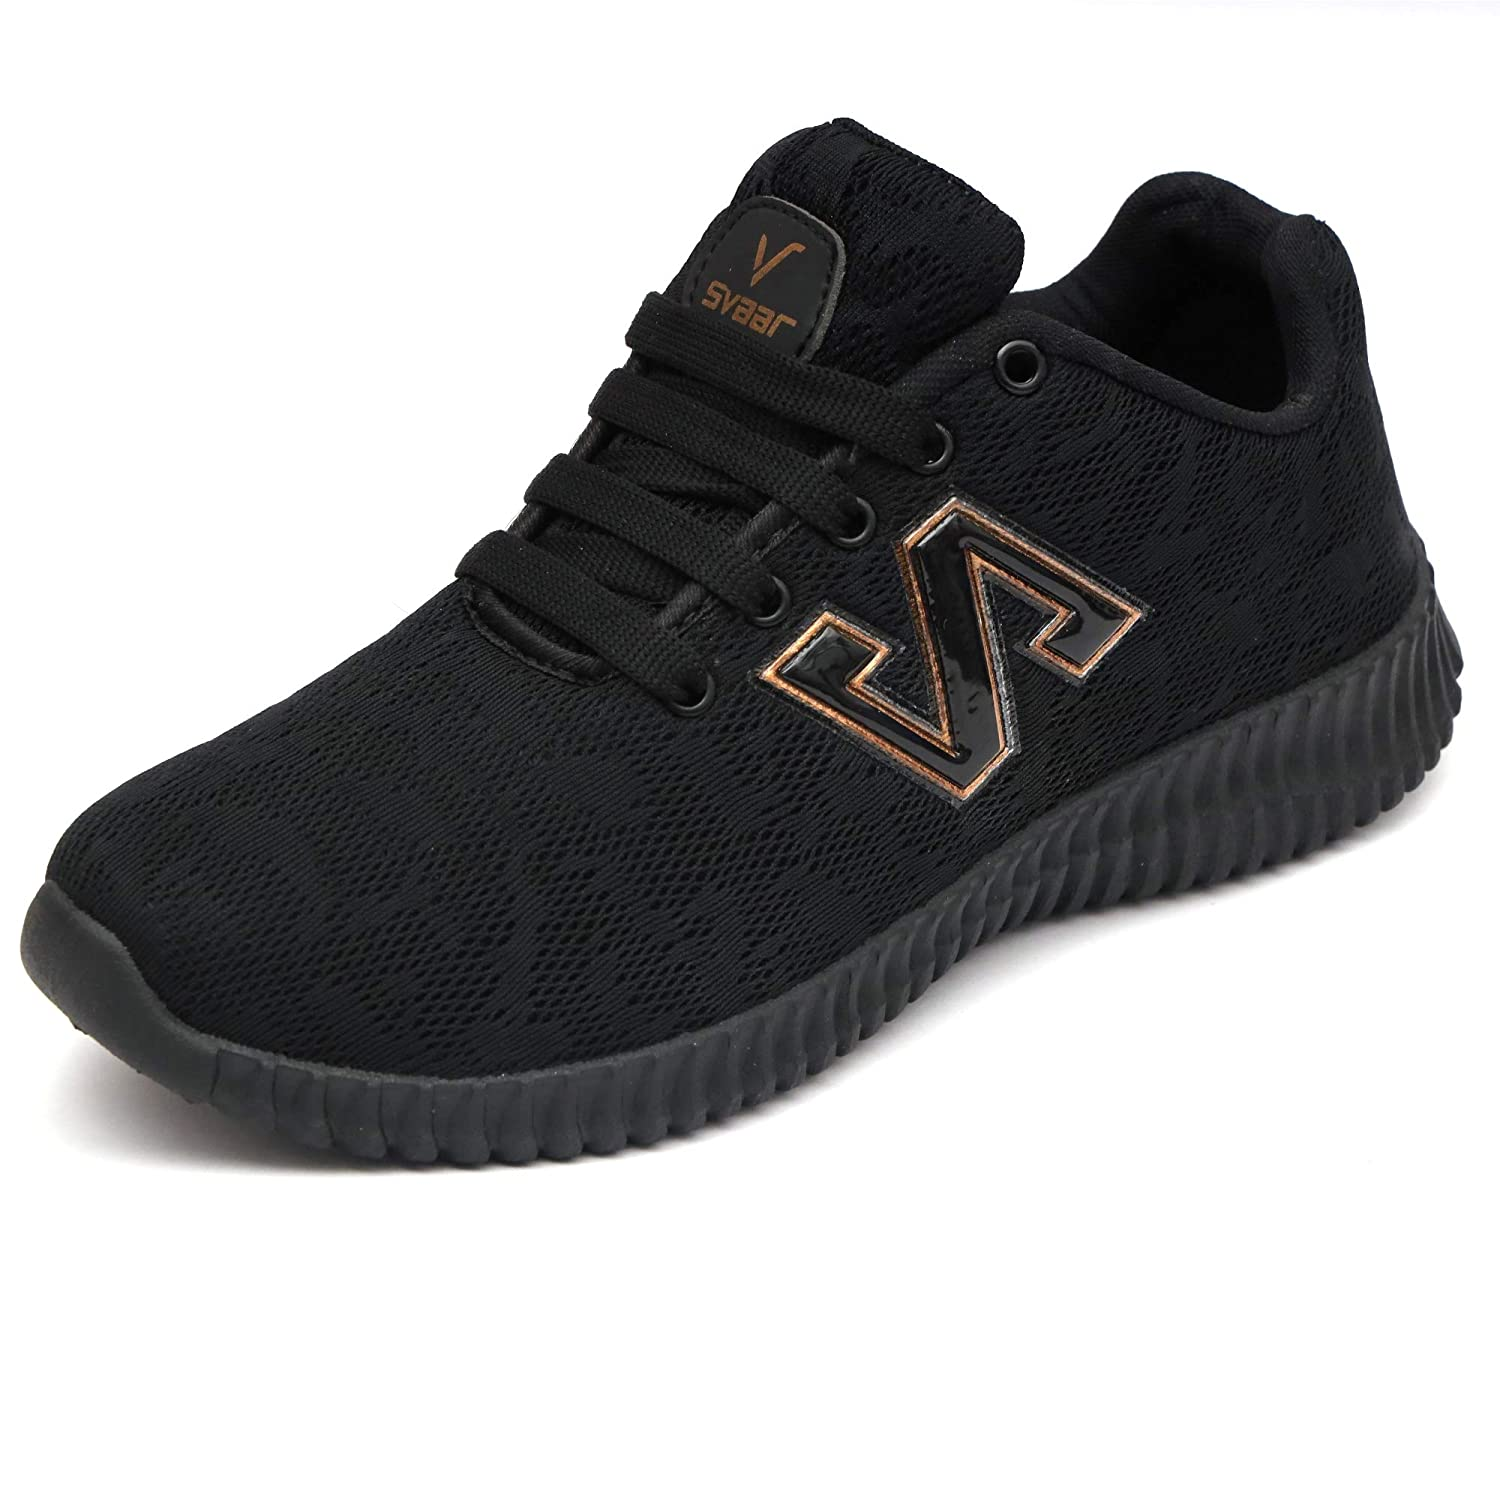 afba2f864a356 SVAAR Black Sports Shoes/Walking Shoes/Running Shoes for Men